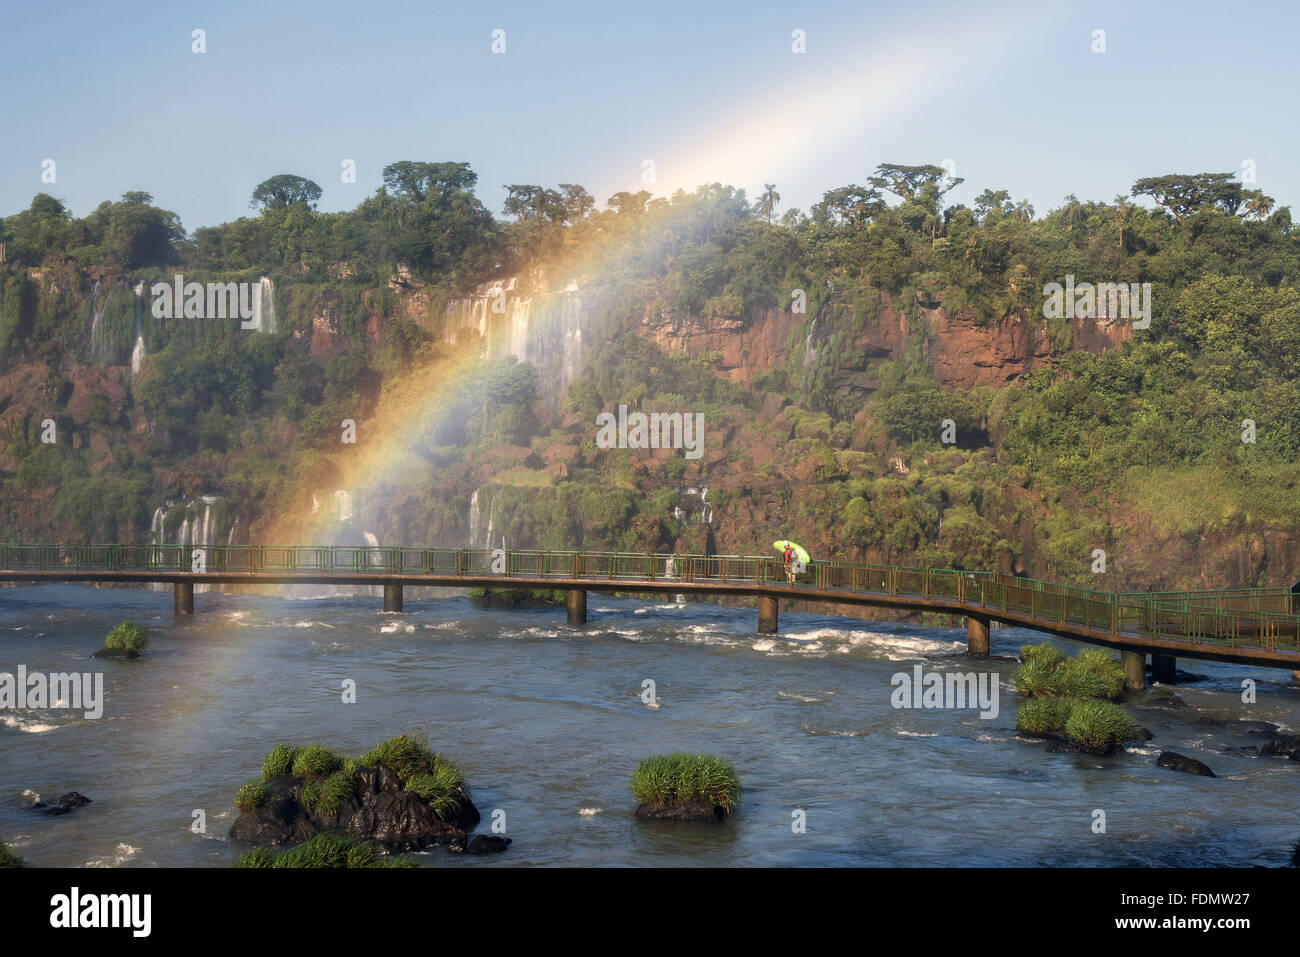 Rainbows in the Iguaçu Falls - Stock Image